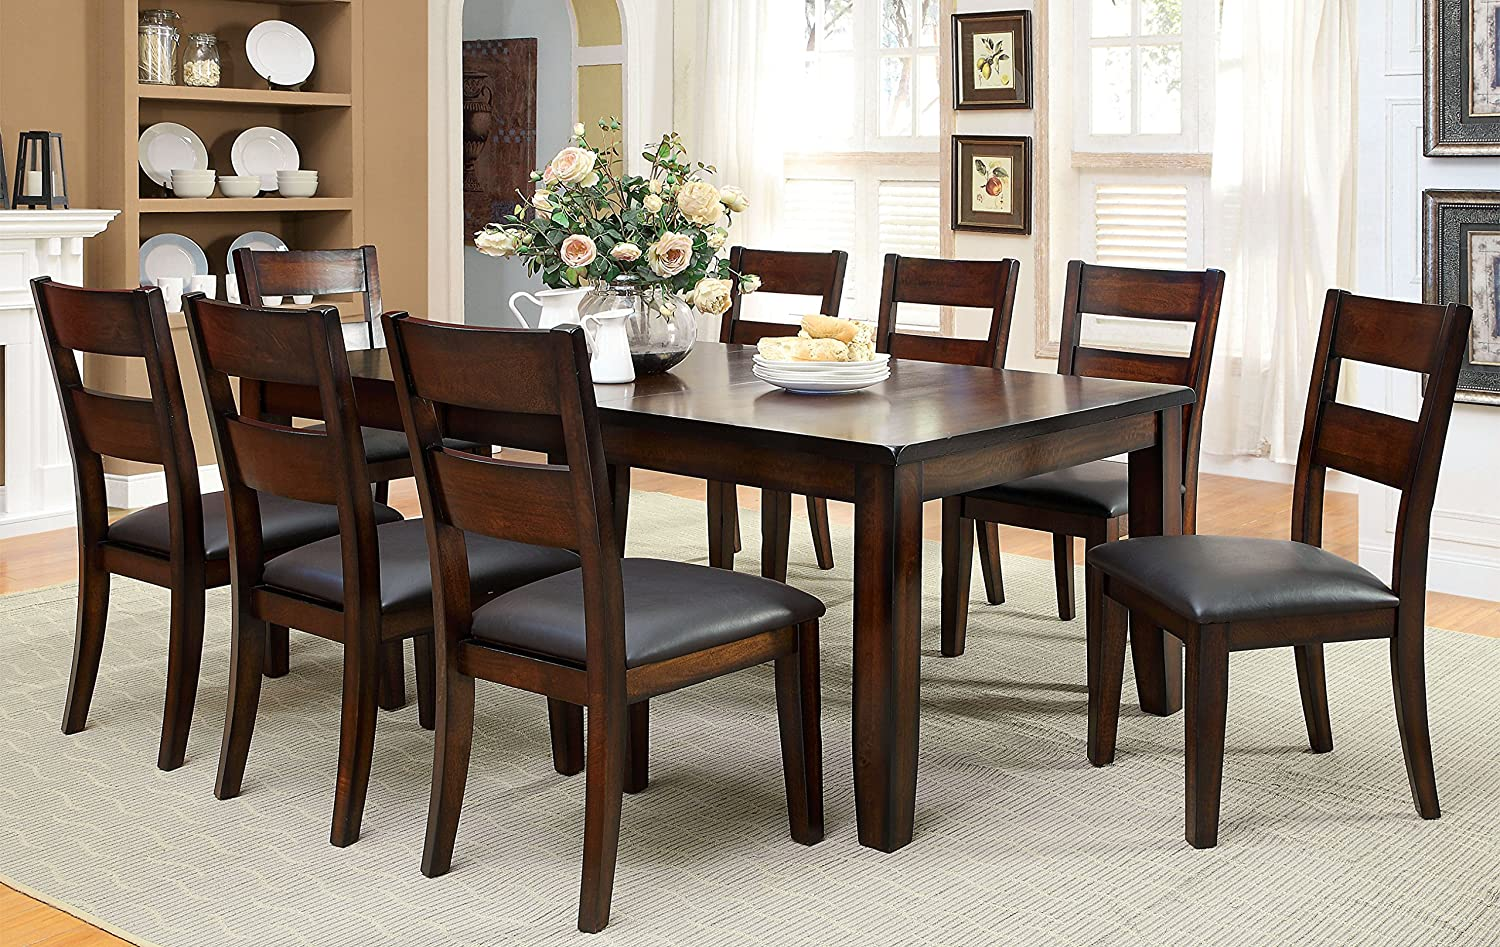 Amazoncom Furniture of America Dallas 9Piece Transitional